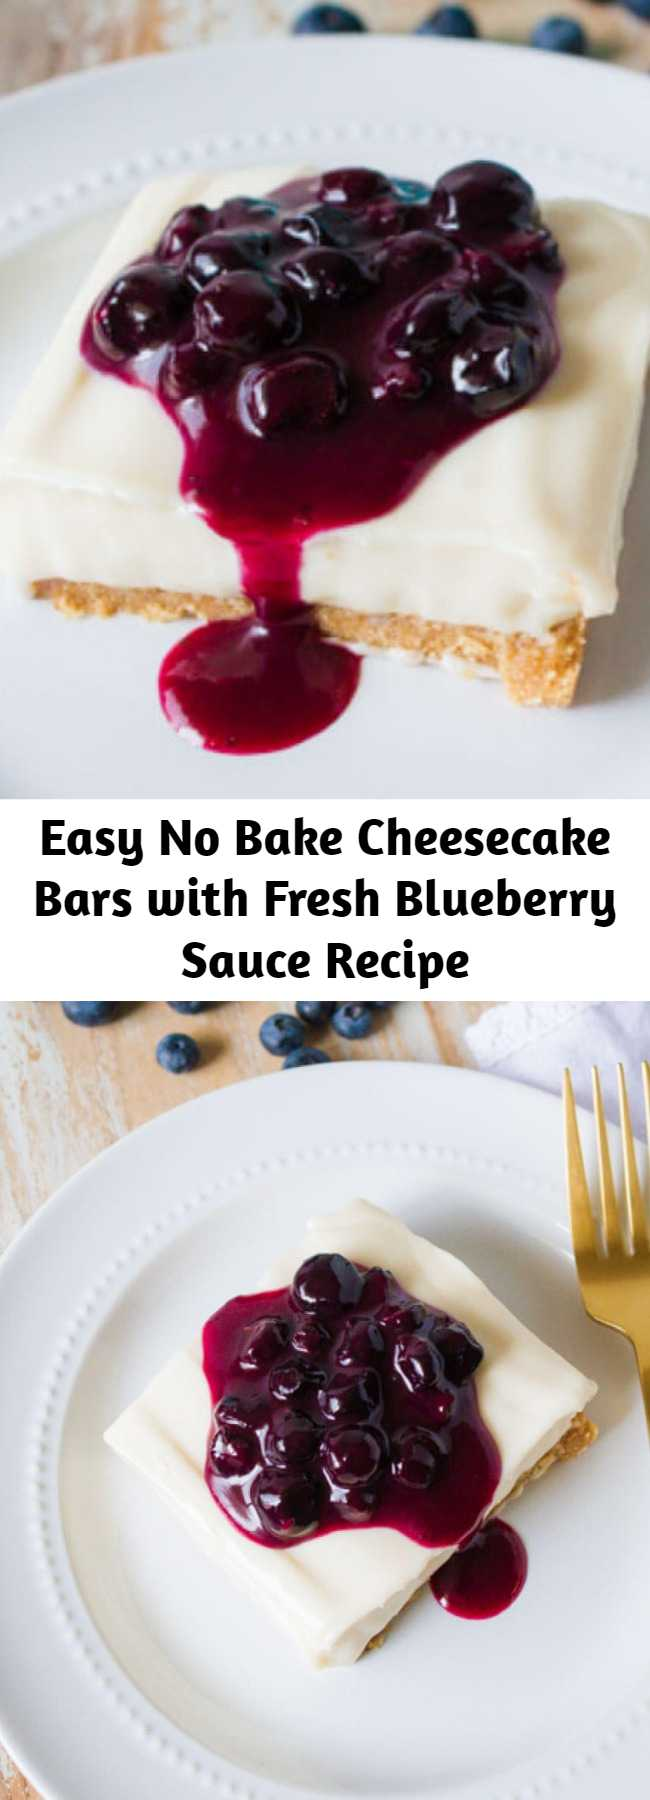 Easy No Bake Cheesecake Bars with Fresh Blueberry Sauce Recipe - This creamy No Bake Cheesecake Bars recipe has a thick graham cracker crust and is topped with a sweet blueberry sauce - SO easy and delicious!